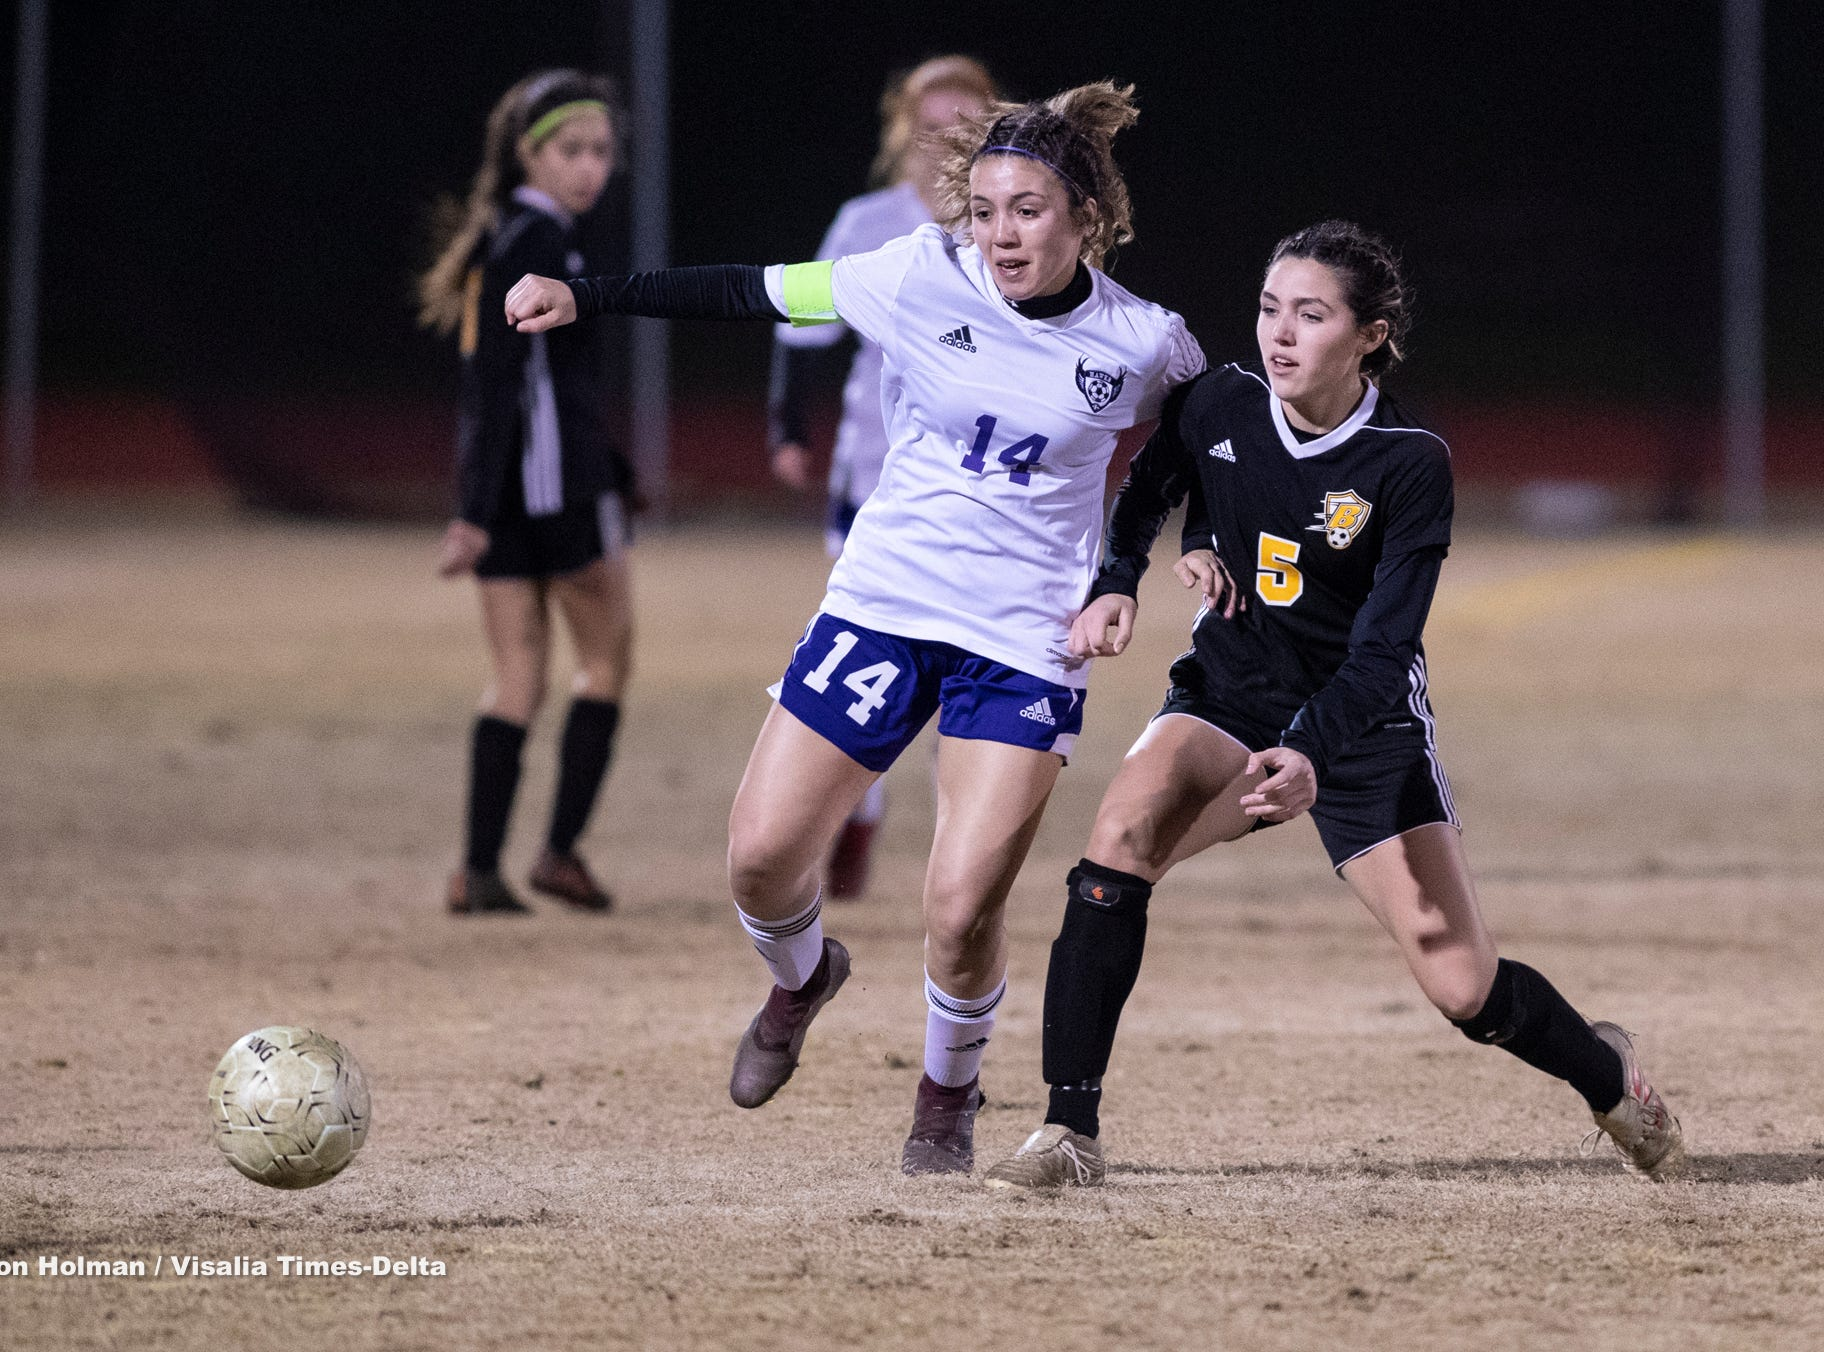 Mission Oak's Brianna Alvarez, left, battles with Golden West's Elizabeth Weldon in a Central Section Division III championship soccer game on Friday, February 22, 2019. Alvarez scored to give the Hawks the 1-0 win.